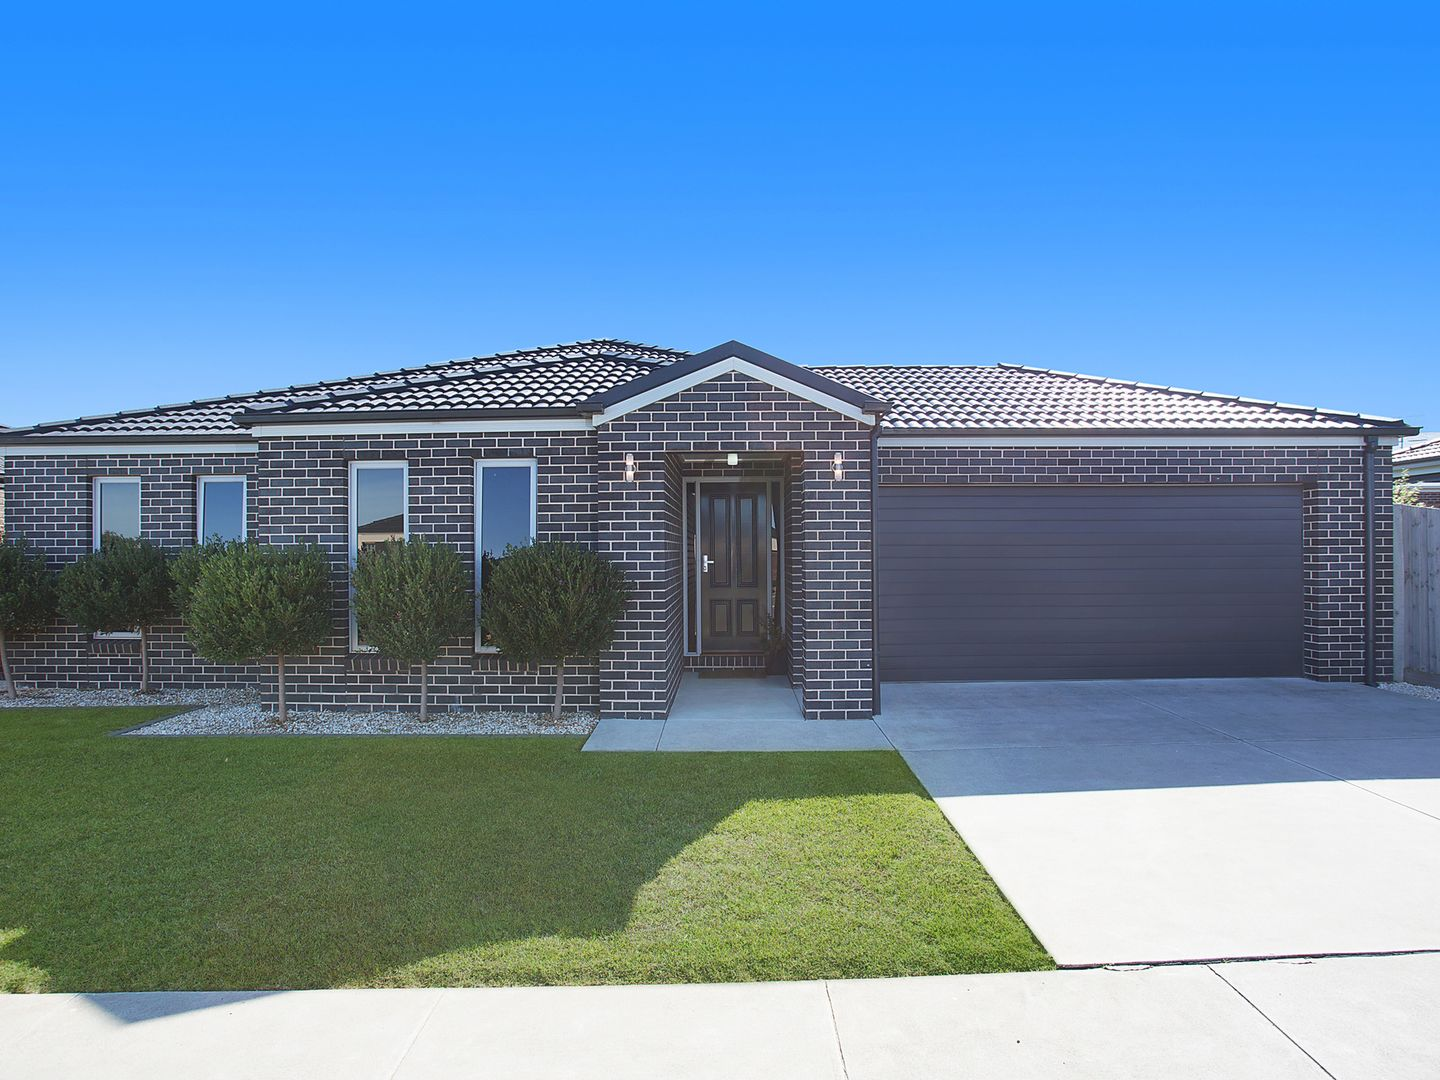 32 Rawlings Drive, Warrnambool VIC 3280, Image 0